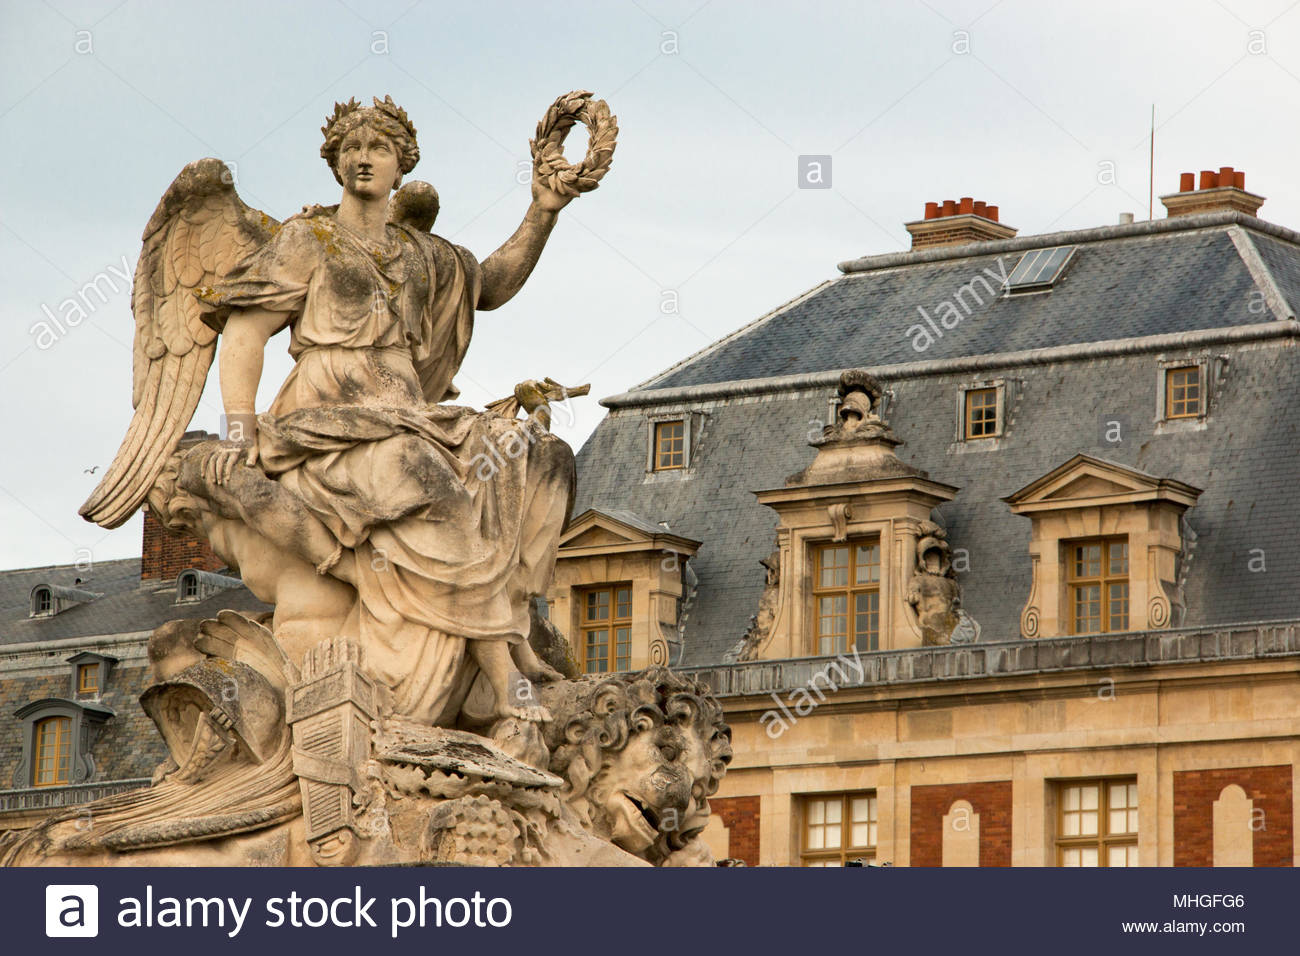 Statue framing the entrance porch of the Palace of Versailles - Stock Image